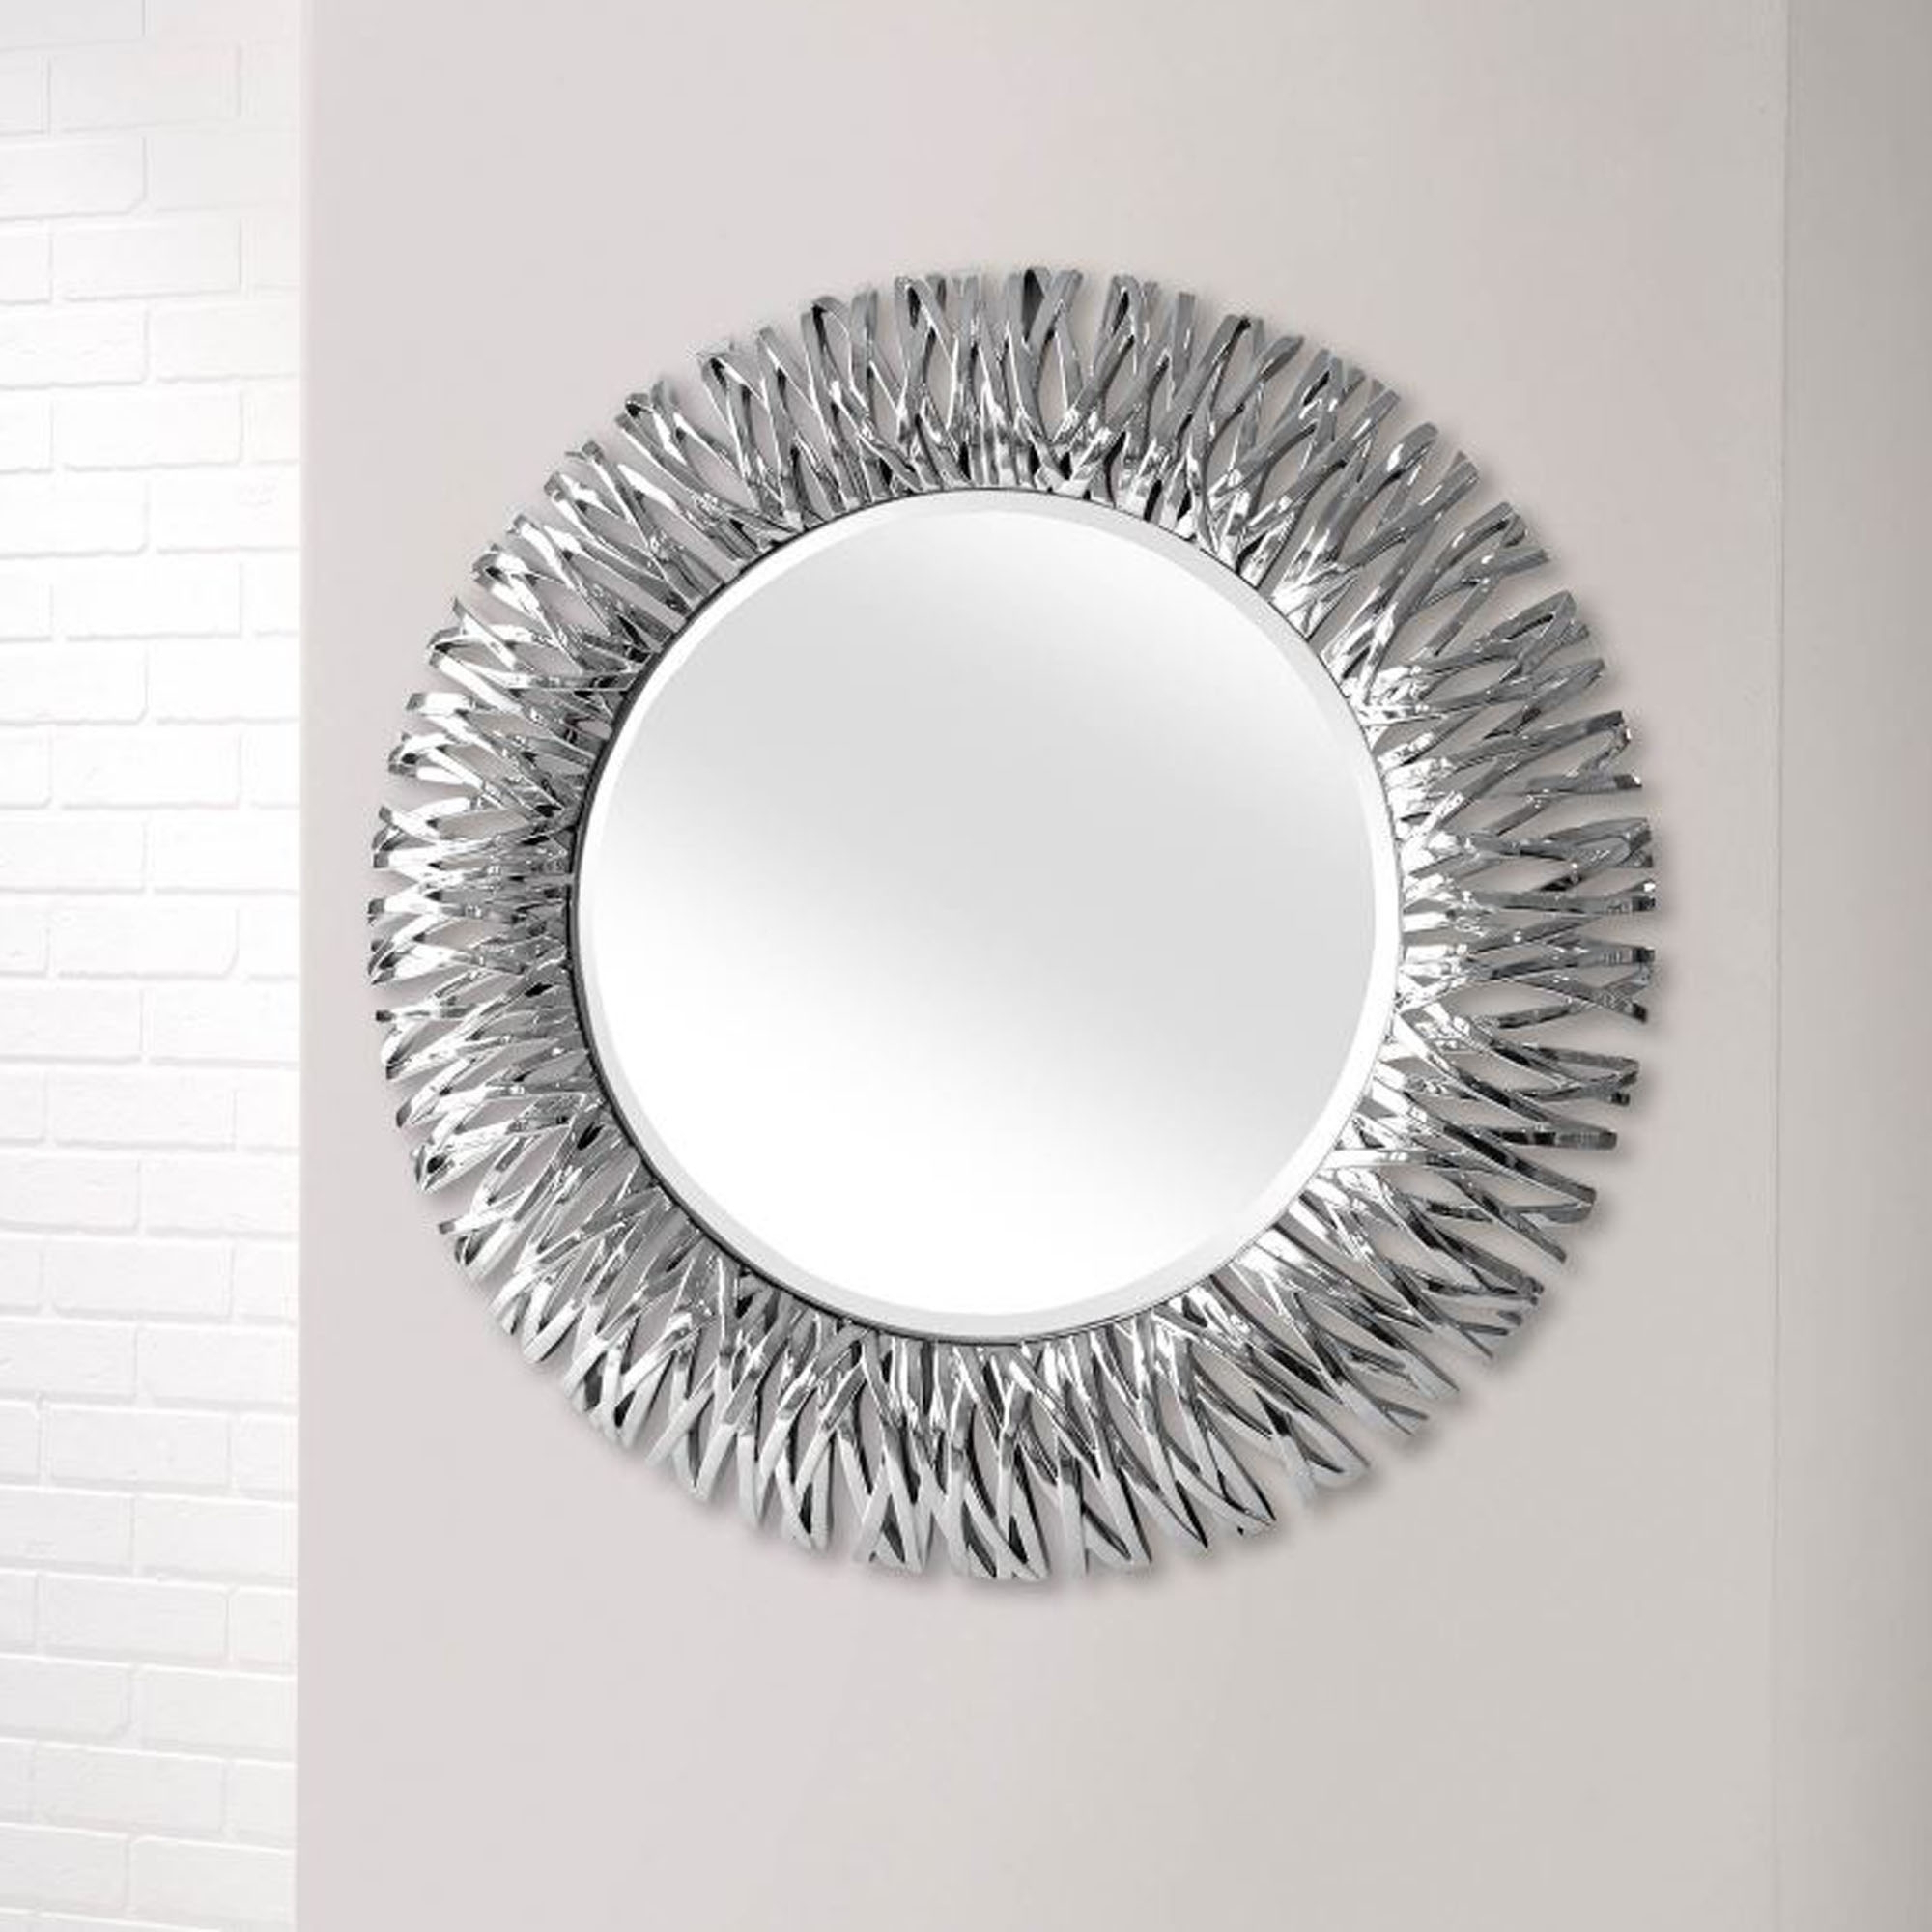 Detailed Chrome Silver Round Wall Mirror Intended For Favorite Round Silver Wall Mirrors (View 1 of 20)